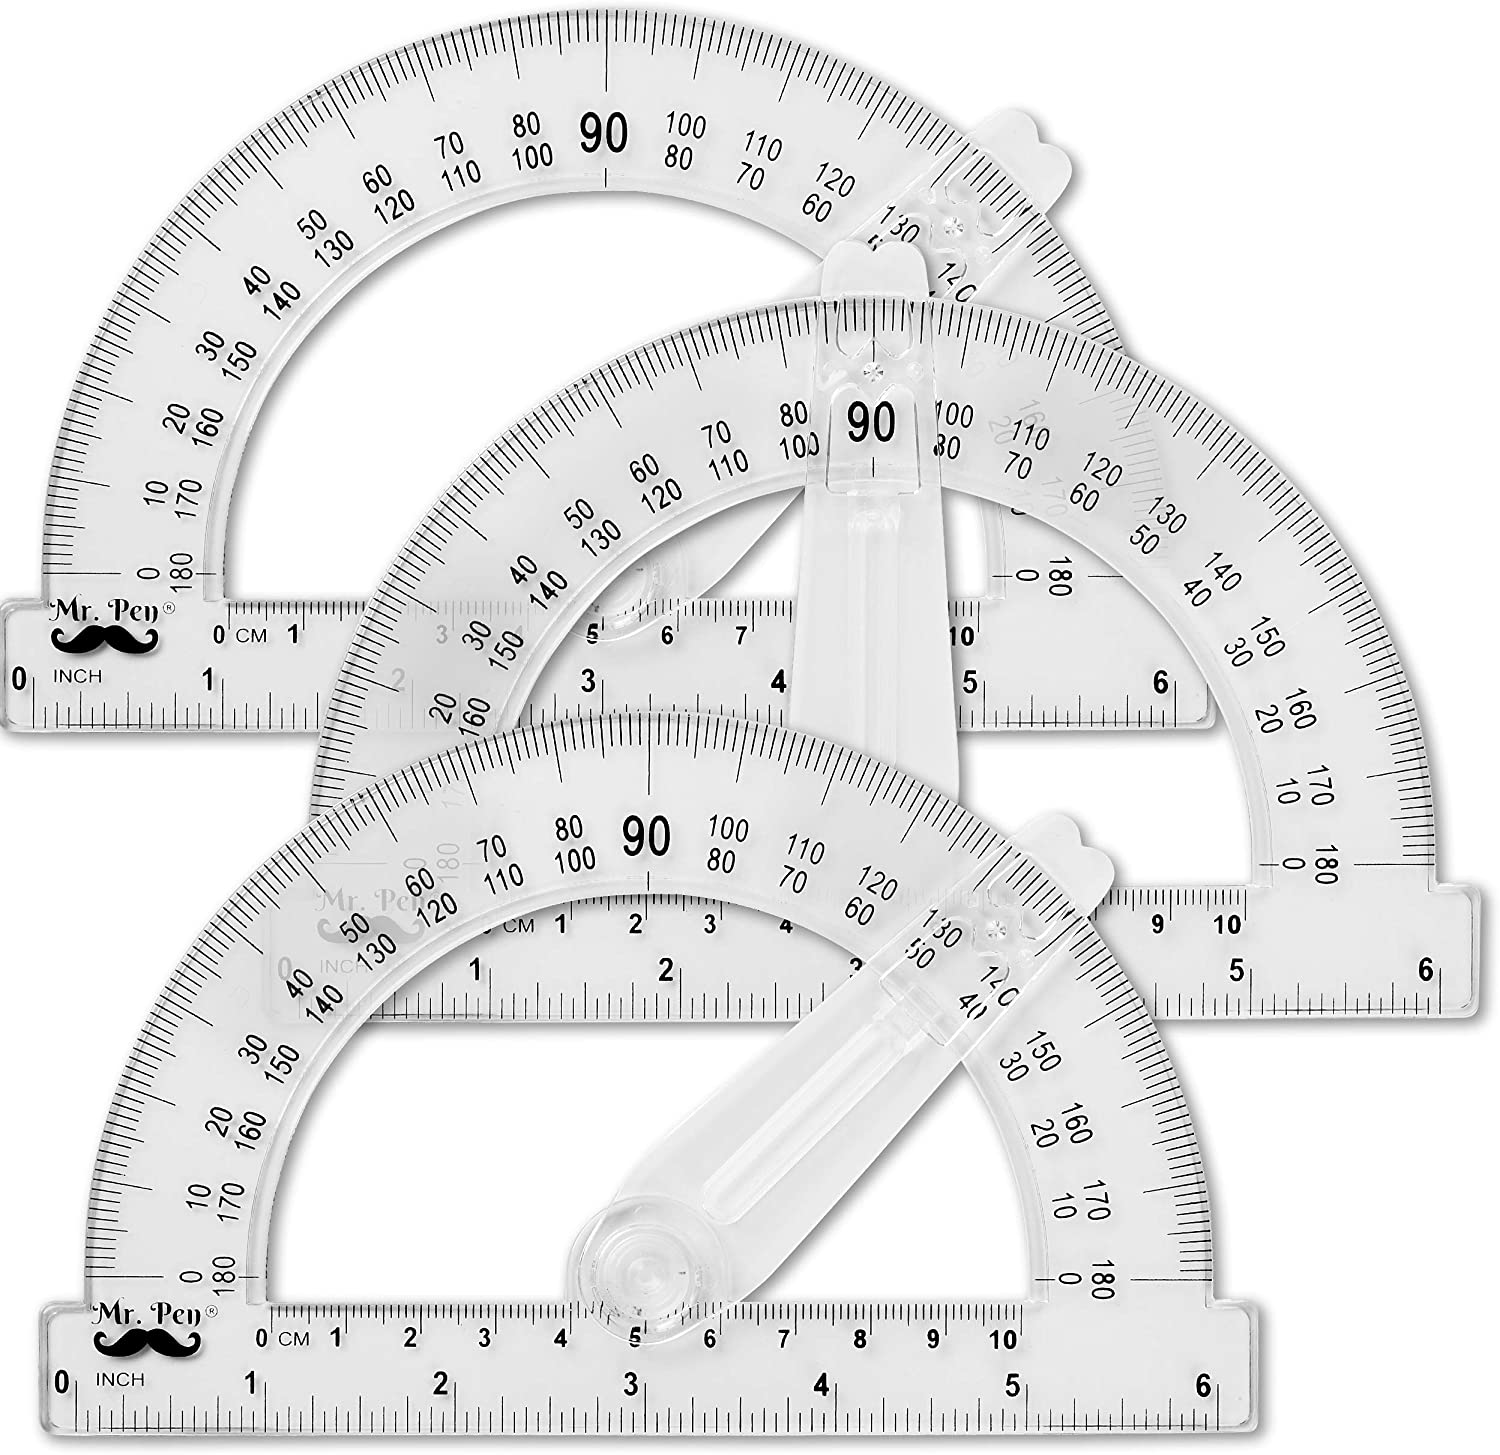 Mr. Pen Protractor, 6 Inches Protractor with Swing Arm, Pack of 3 : Office Products